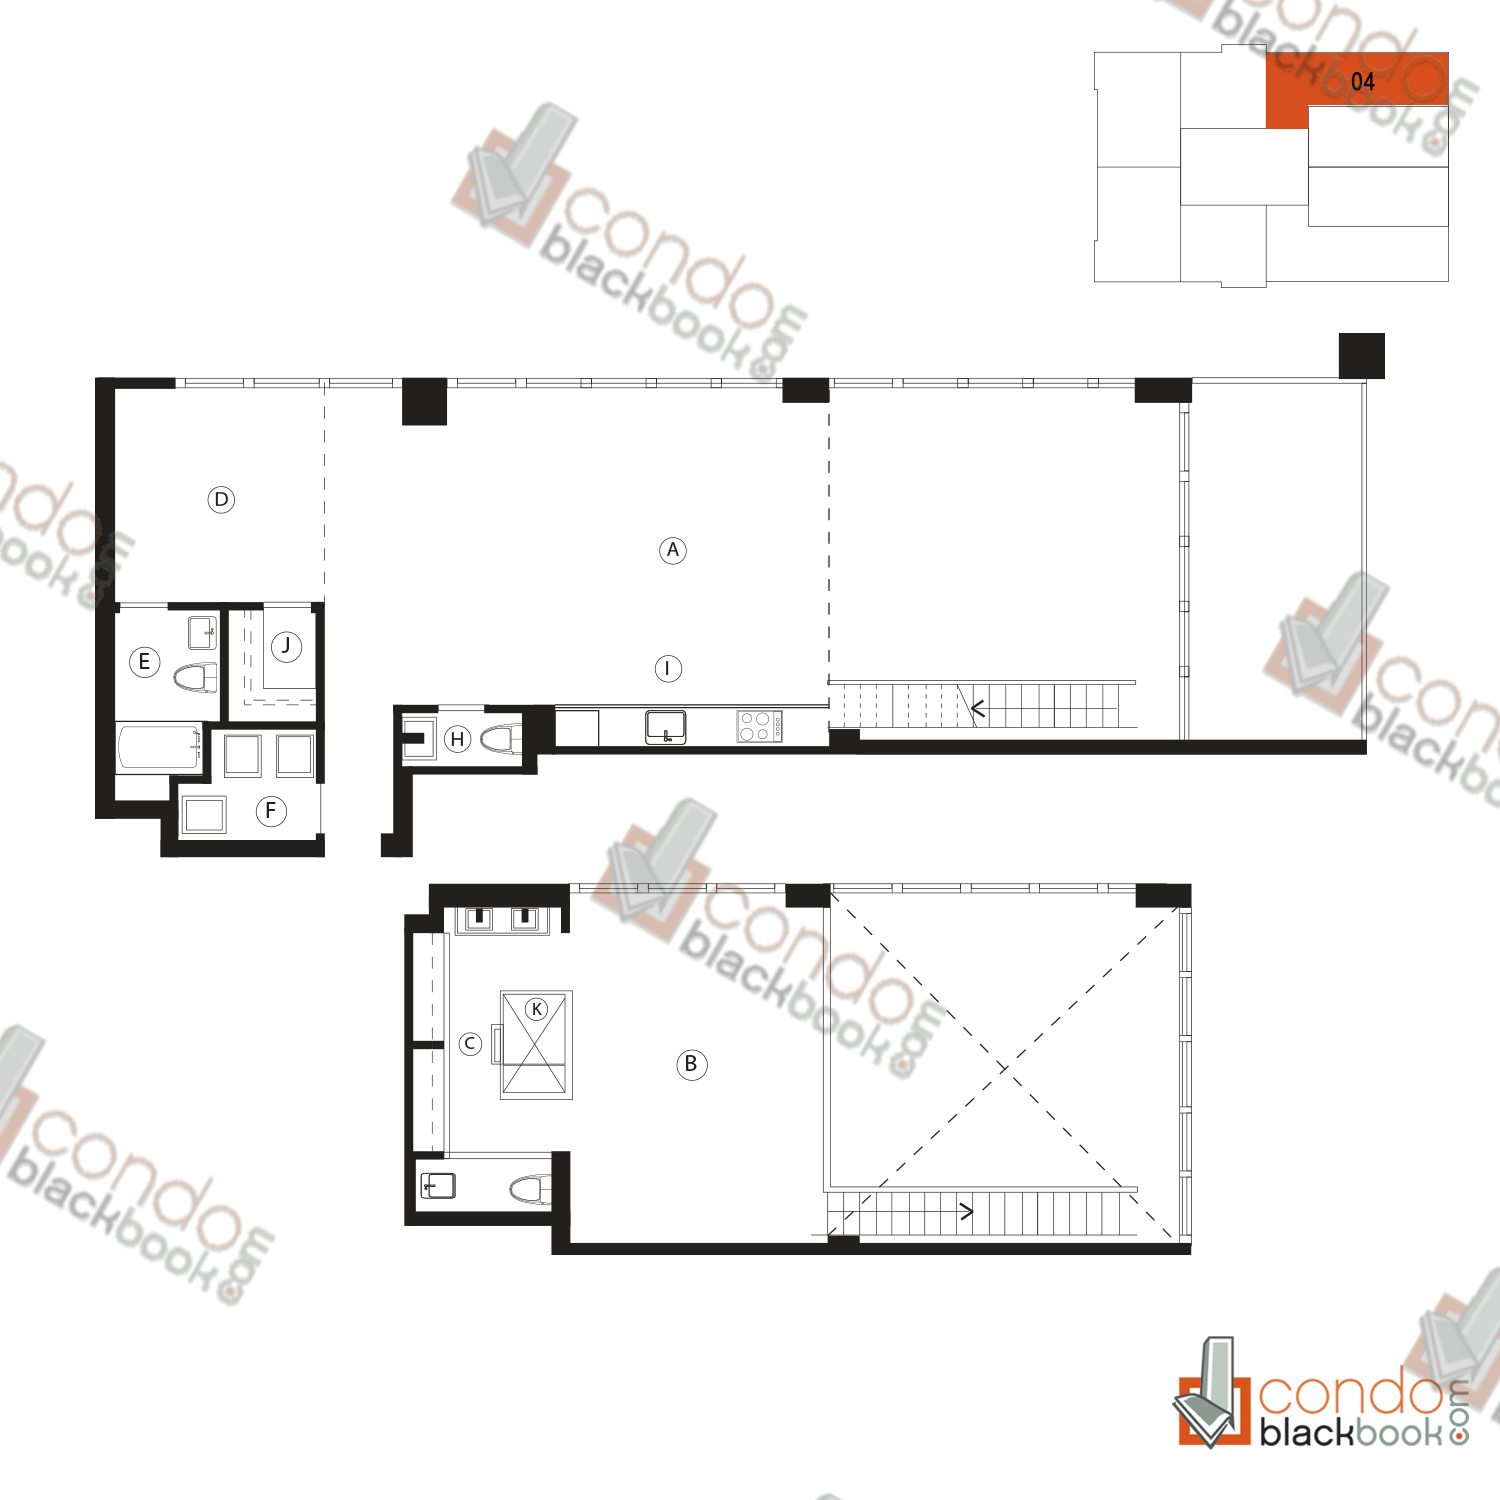 Floor plan for Ten Museum Park Downtown Miami Miami, model 04, line 04, 2/2.5 bedrooms, 1,730 sq ft